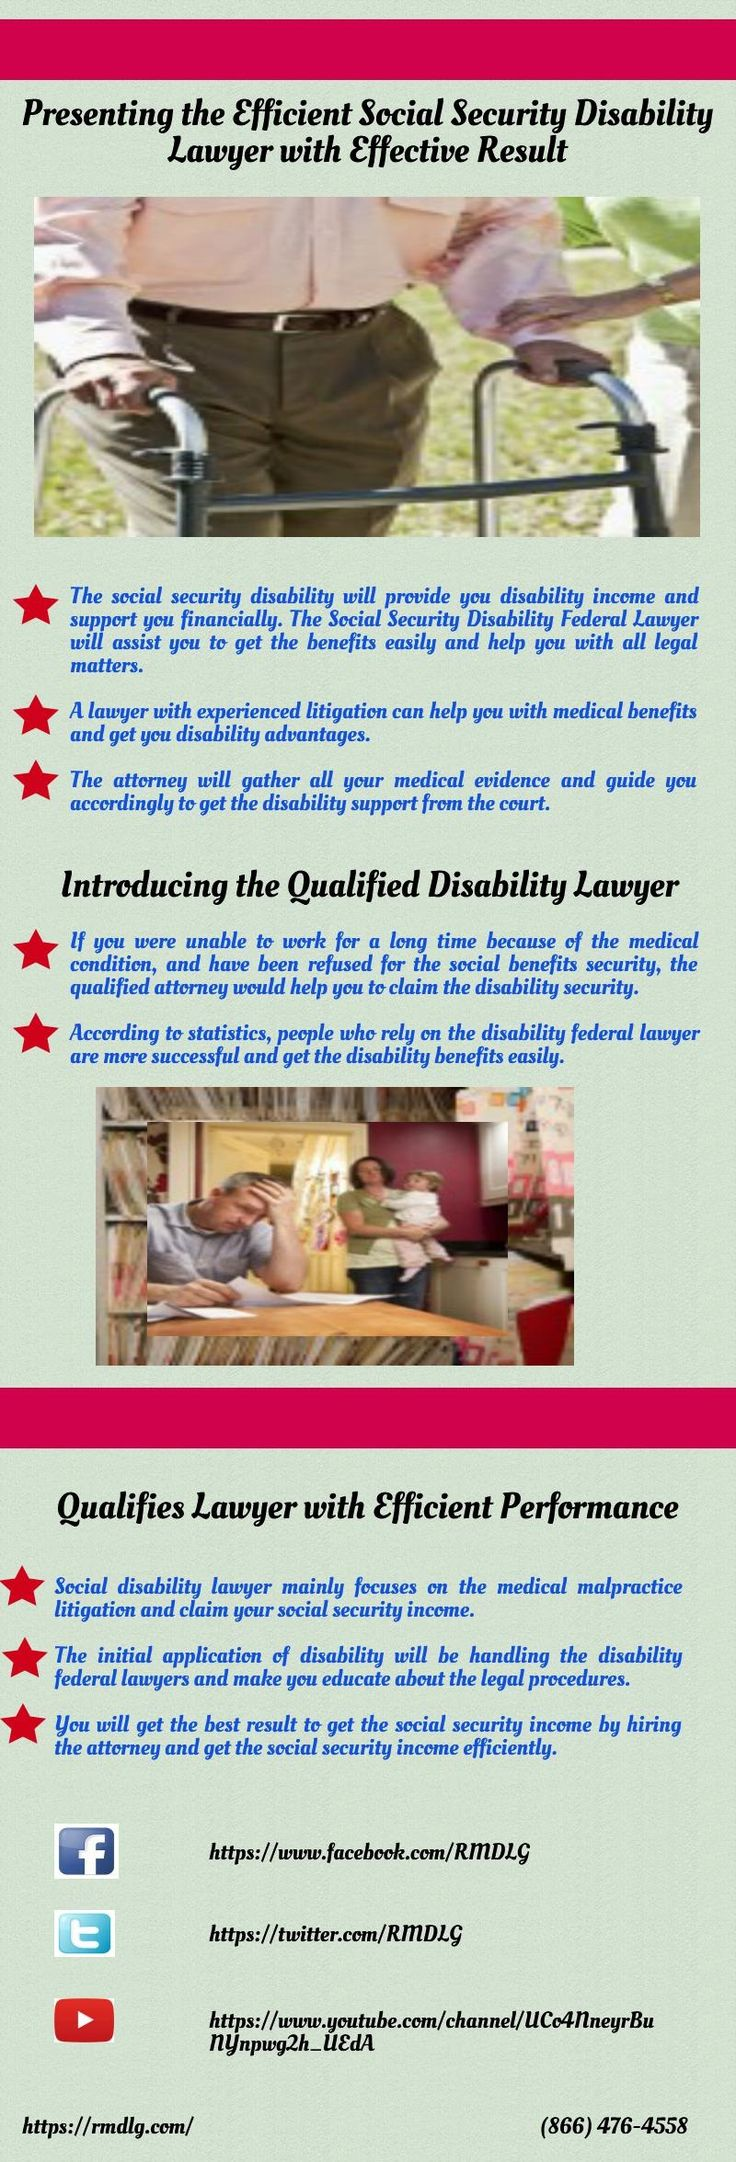 The Social Security Disability Will Provide You Disability Income